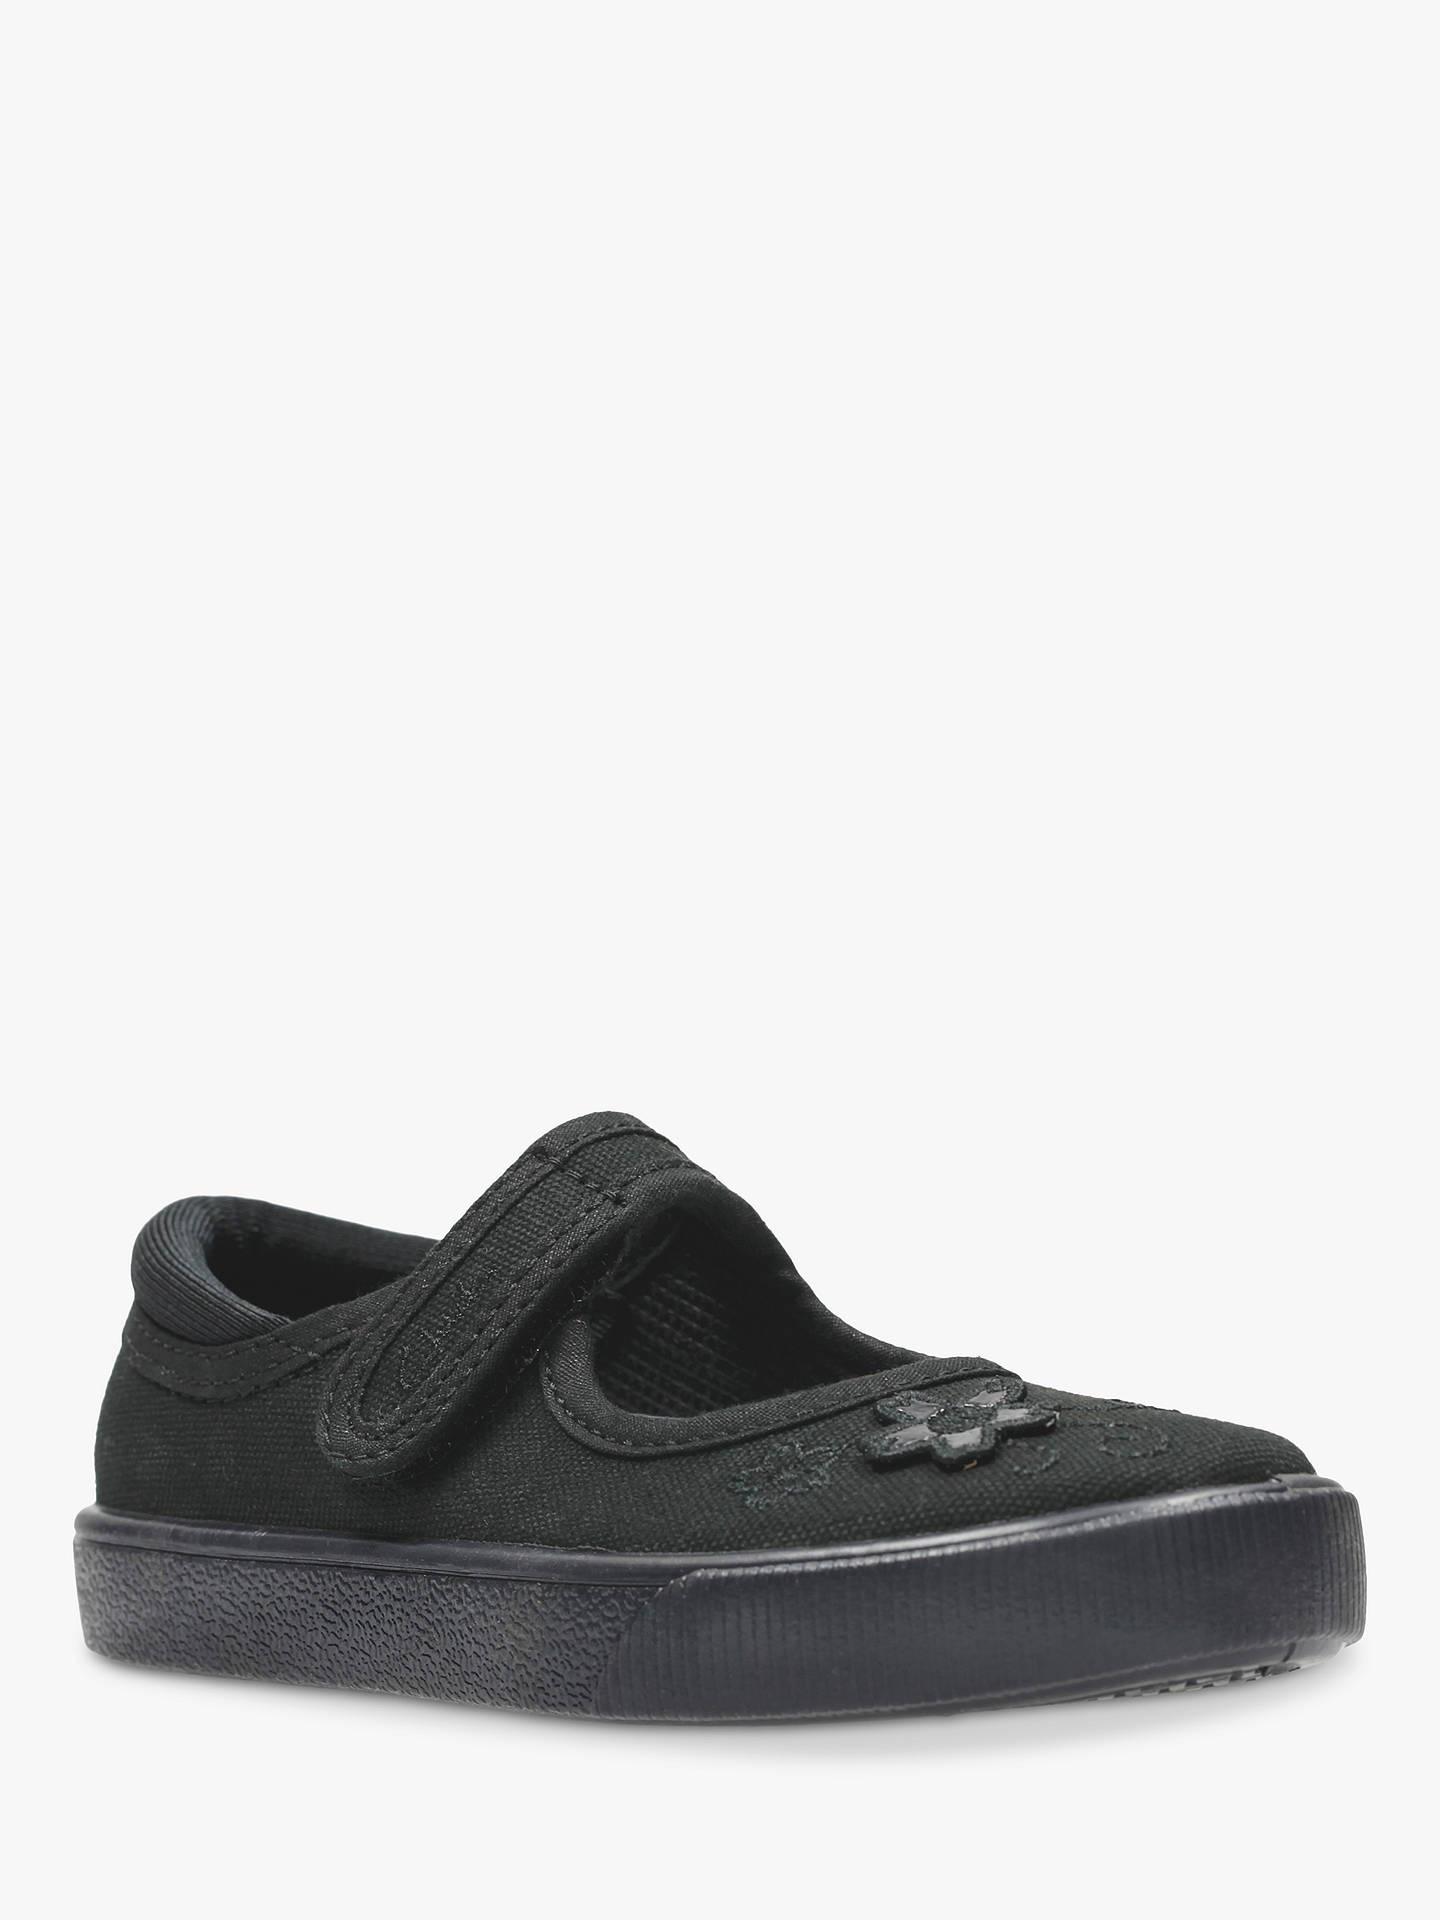 Clothing, Shoes & Accessories Symbol Of The Brand Clarks 10f Girls Plimsoles